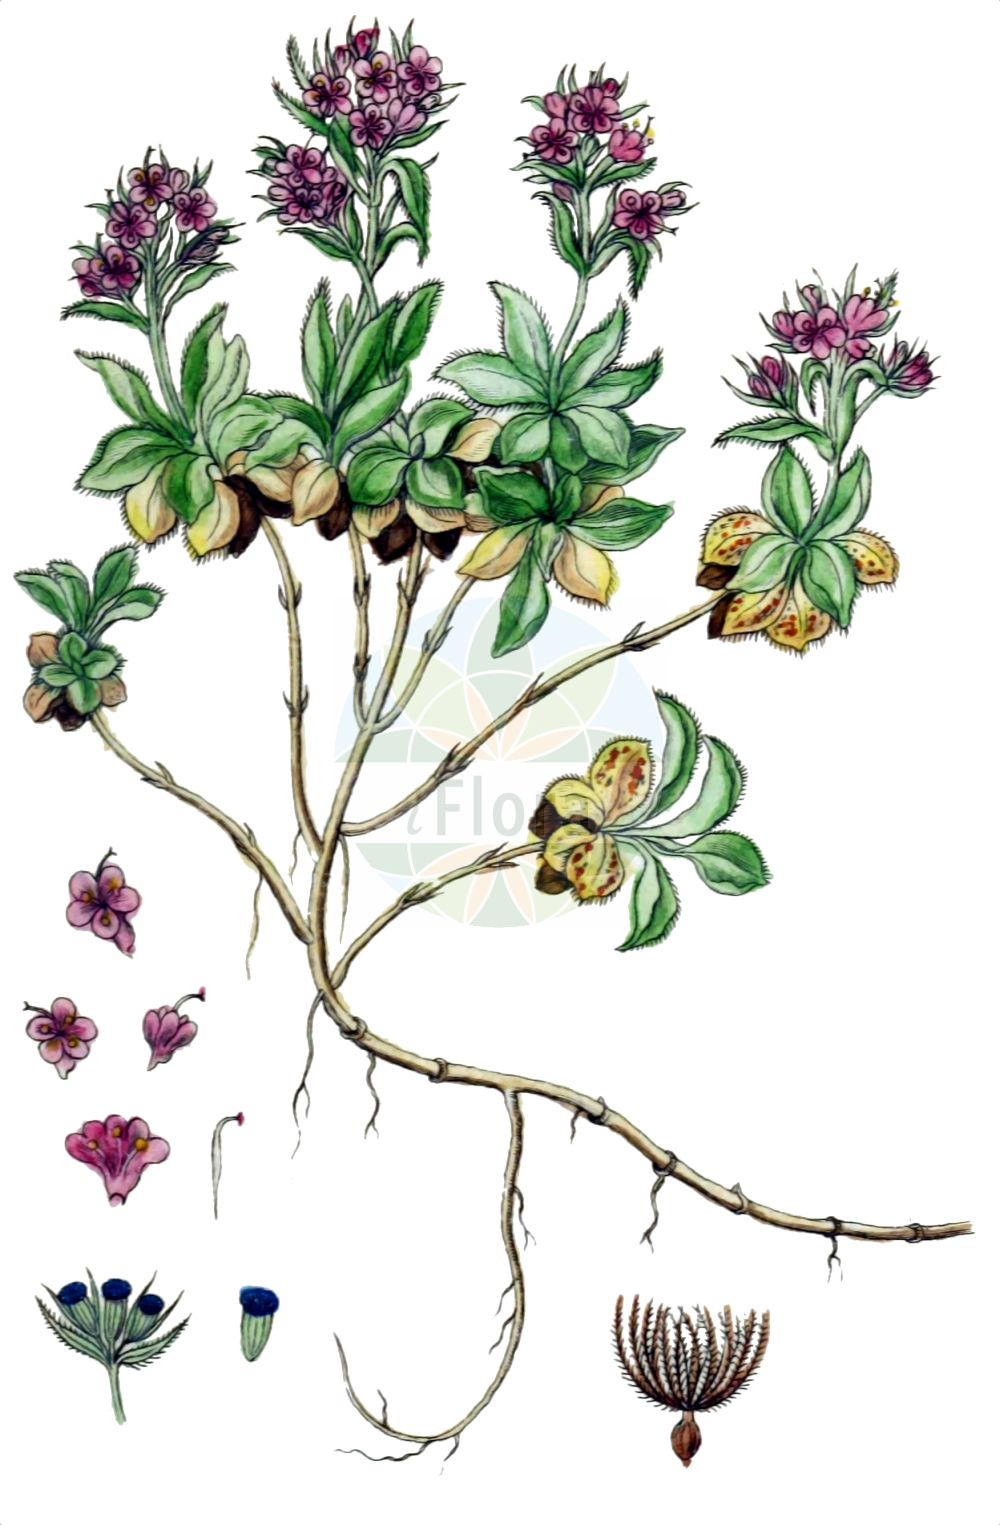 Historische Abbildung von Valeriana supina (Zwerg-Baldrian - Dwarf Valerian). Das Bild zeigt Blatt, Bluete, Frucht und Same. ---- Historical Drawing of Valeriana supina (Zwerg-Baldrian - Dwarf Valerian).The image is showing leaf, flower, fruit and seed.(Valeriana supina,Zwerg-Baldrian,Dwarf Valerian,Valeriana supina,Zwerg-Baldrian,Dwarf Valerian,Valeriana,Baldrian,Valerian,Caprifoliaceae,Geissblattgewaechse,Honeysuckle family,Blatt,Bluete,Frucht,Same,leaf,flower,fruit,seed,Sturm (1796f))